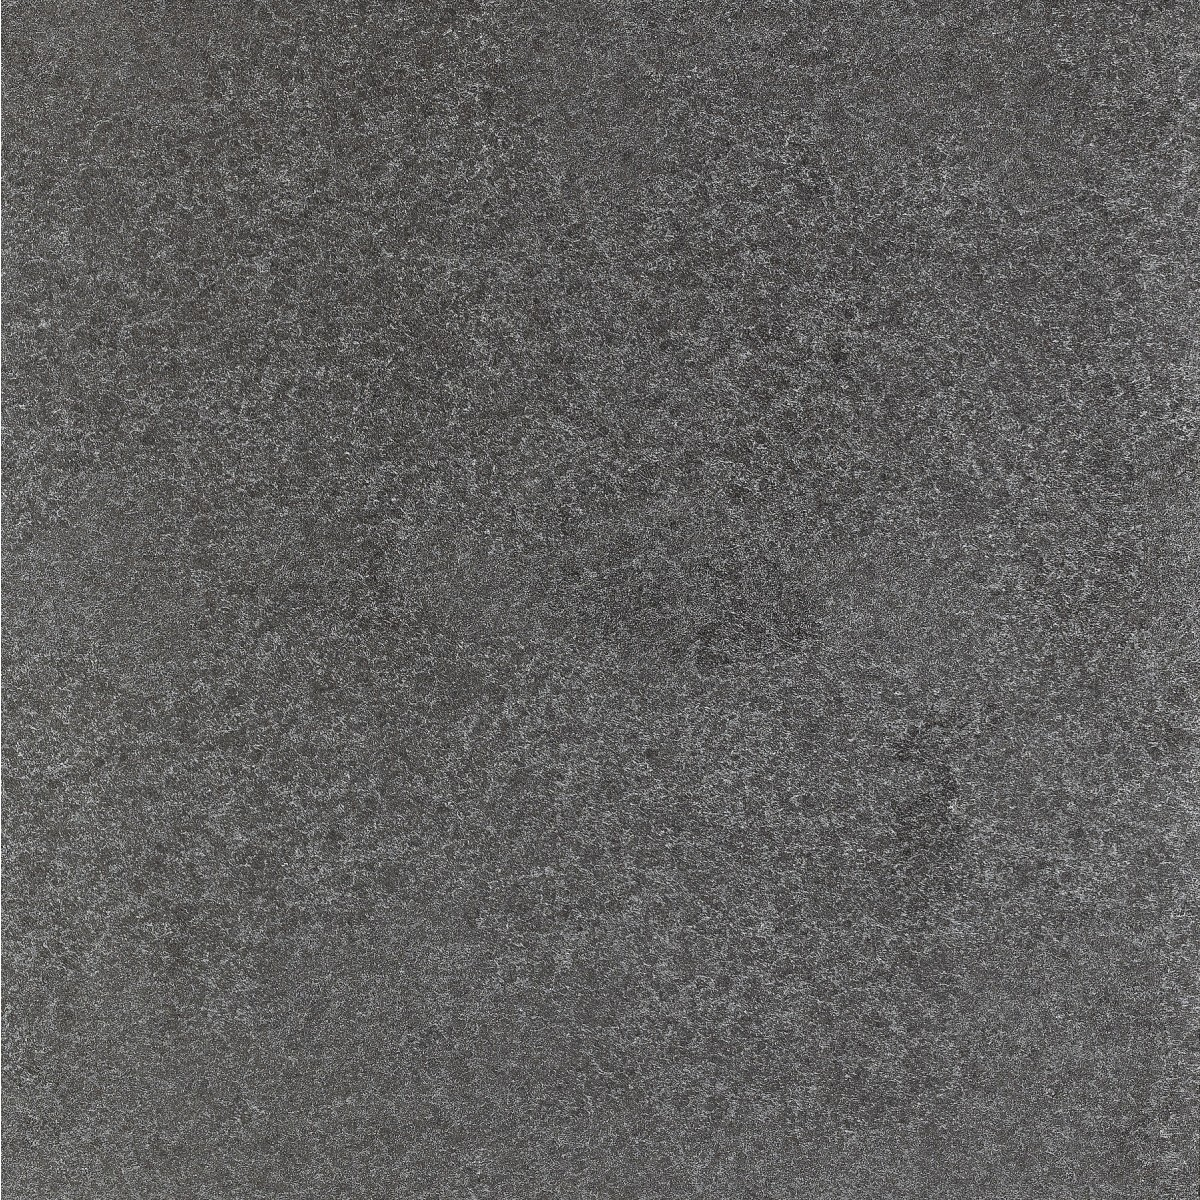 Basalt Stone Dark, matt, 600x600x20 mm